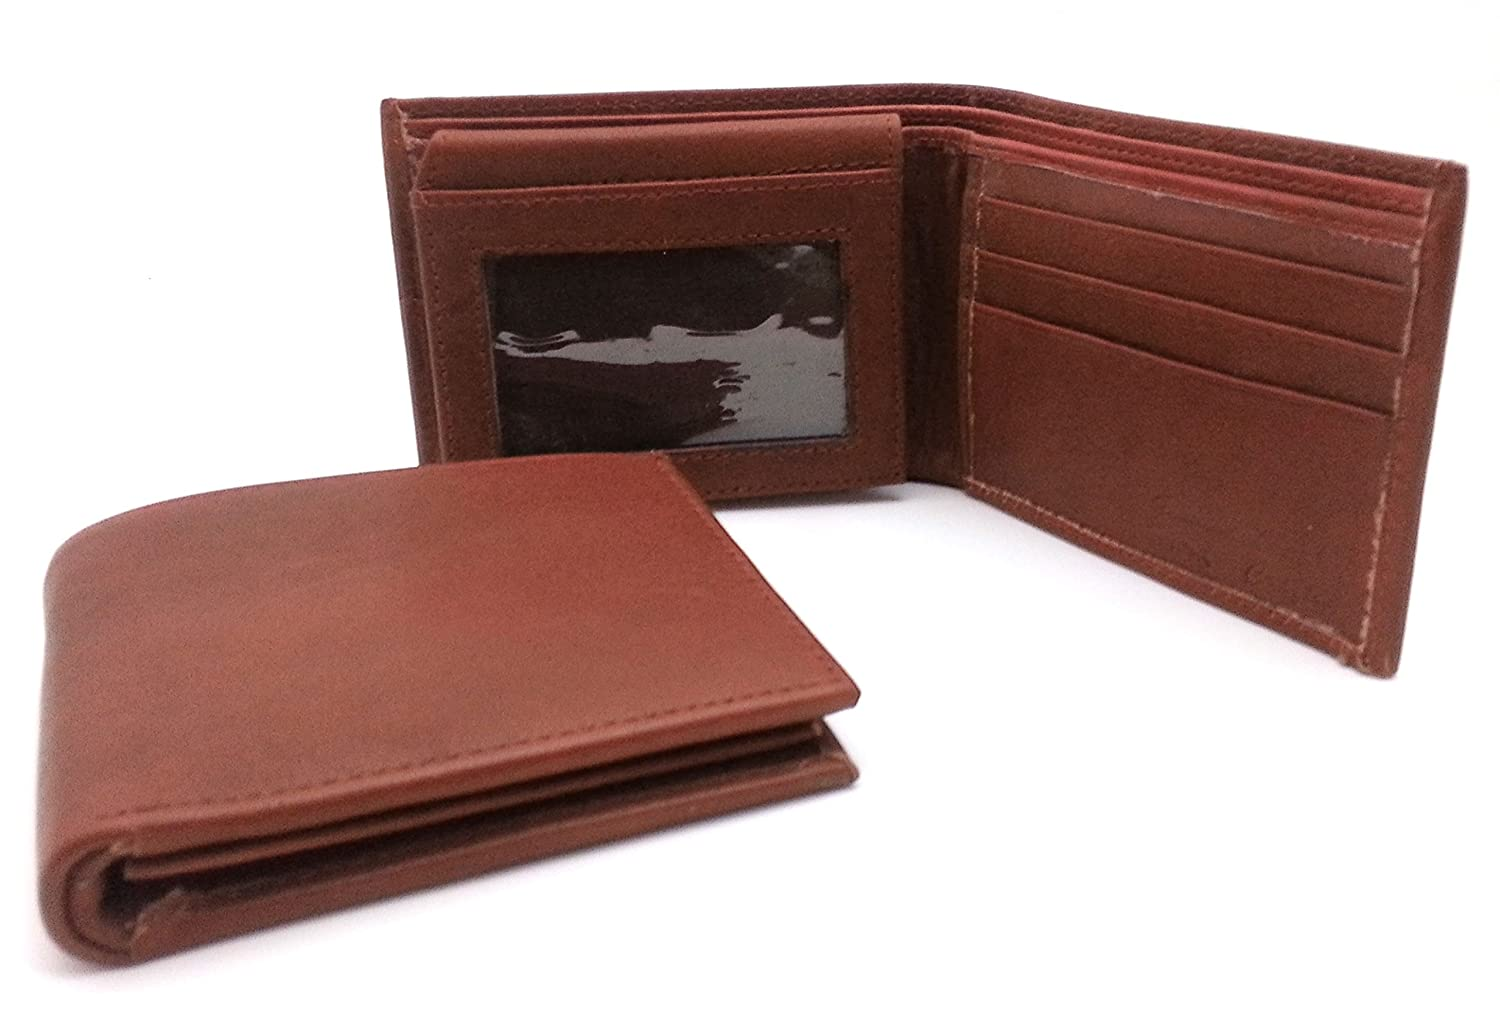 Bifold Genuine Leather Reddish Brown Plain Compact Wallet with Card Window